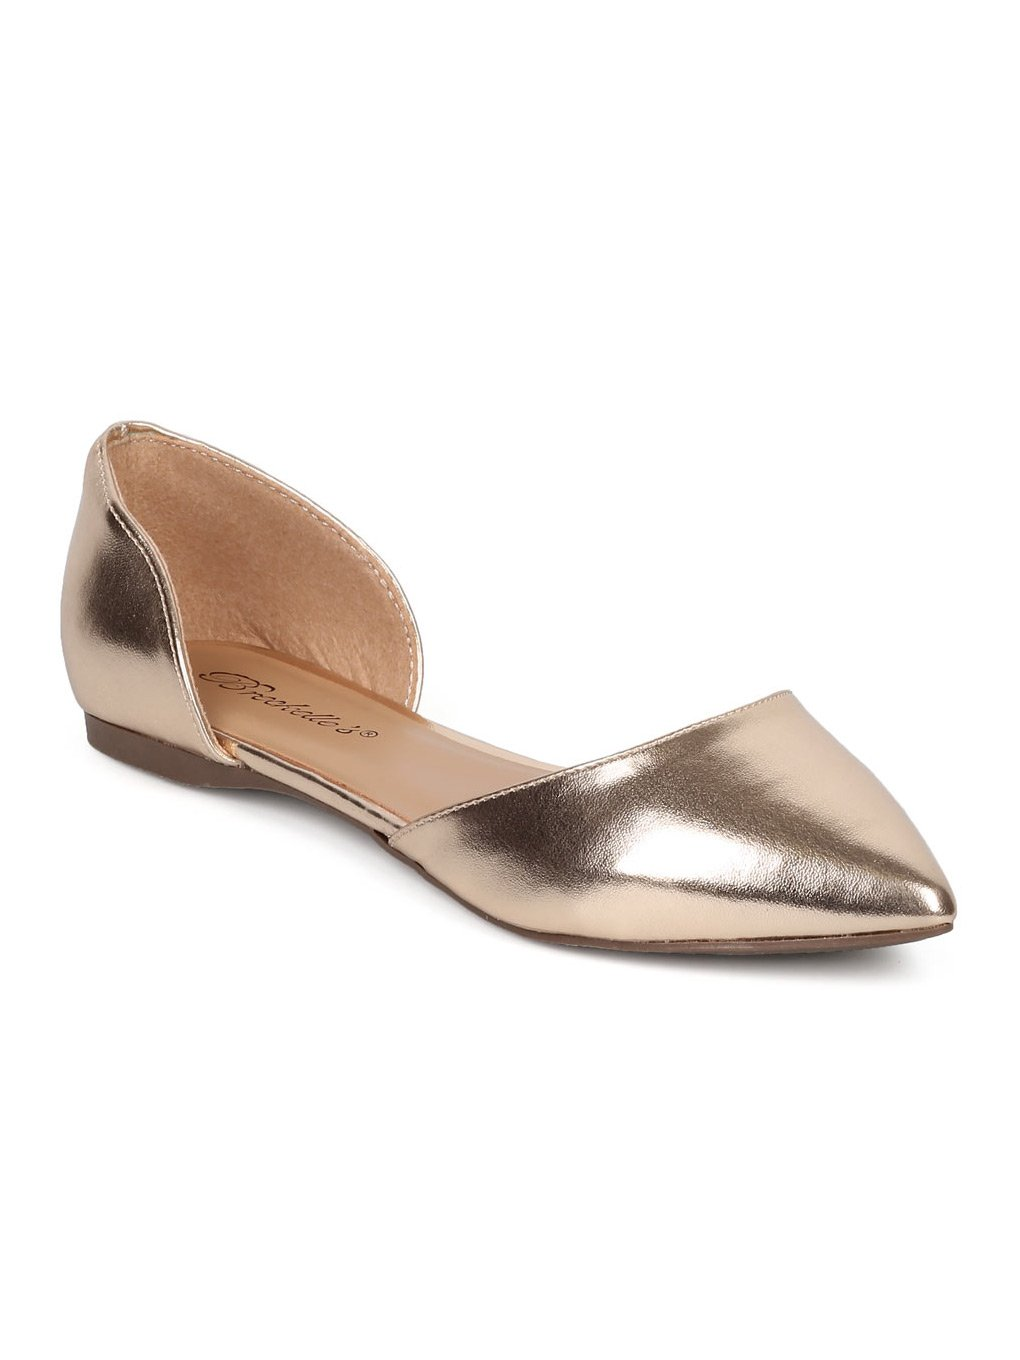 Breckelle's Women Leatherette Pointy Toe Dorsay Flat GG17 B06XJKYX1Q 7 M US|Champagne